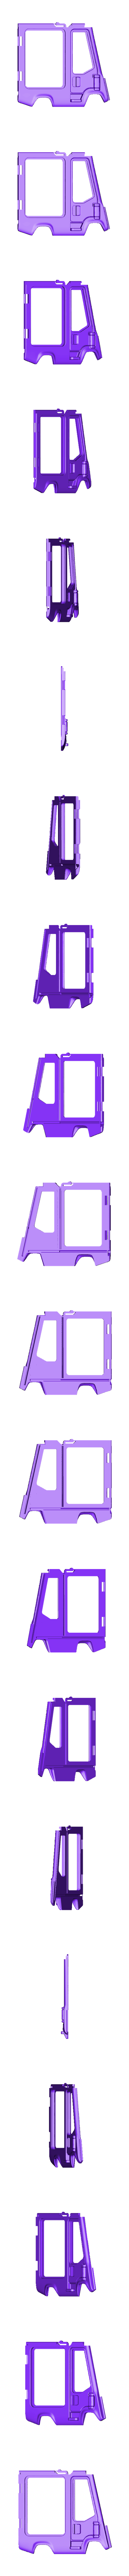 6_1R_Side_Simple_R.stl Download free STL file Piggy Van Jr • 3D printing object, Slava_Z